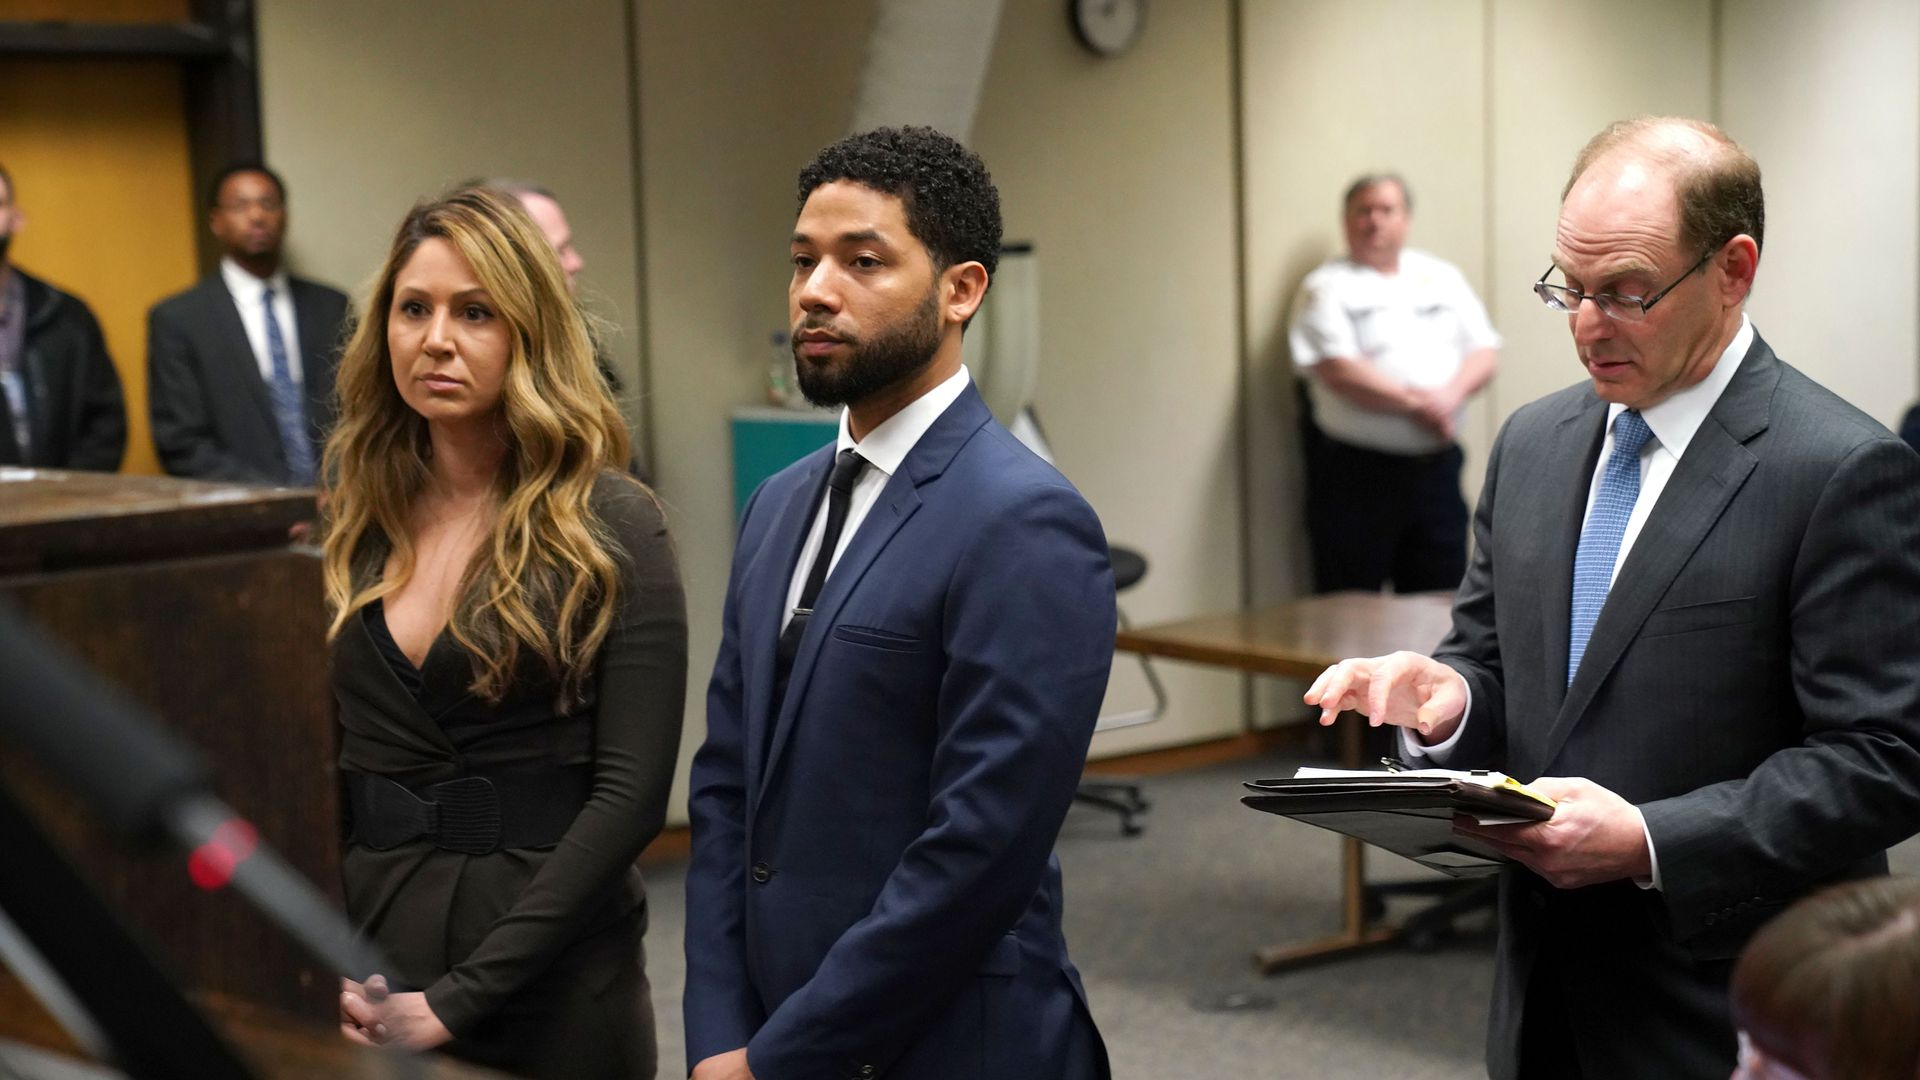 Actor Jussie Smollett with his lawyers